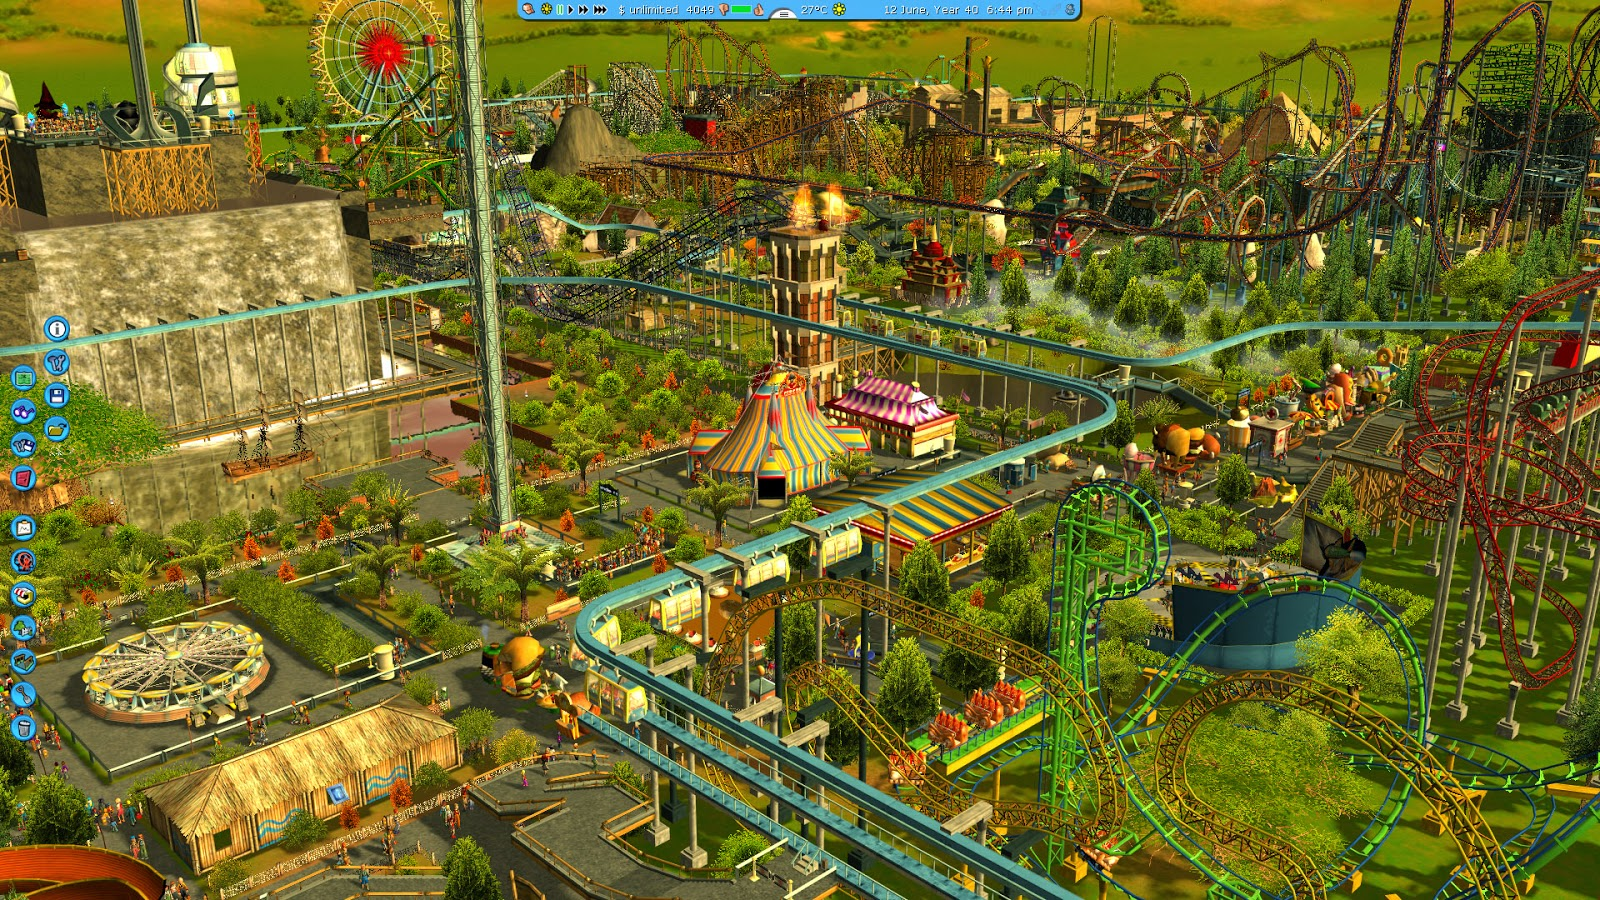 Porting Kit | 'Rollercoaster Tycoon' for macOS